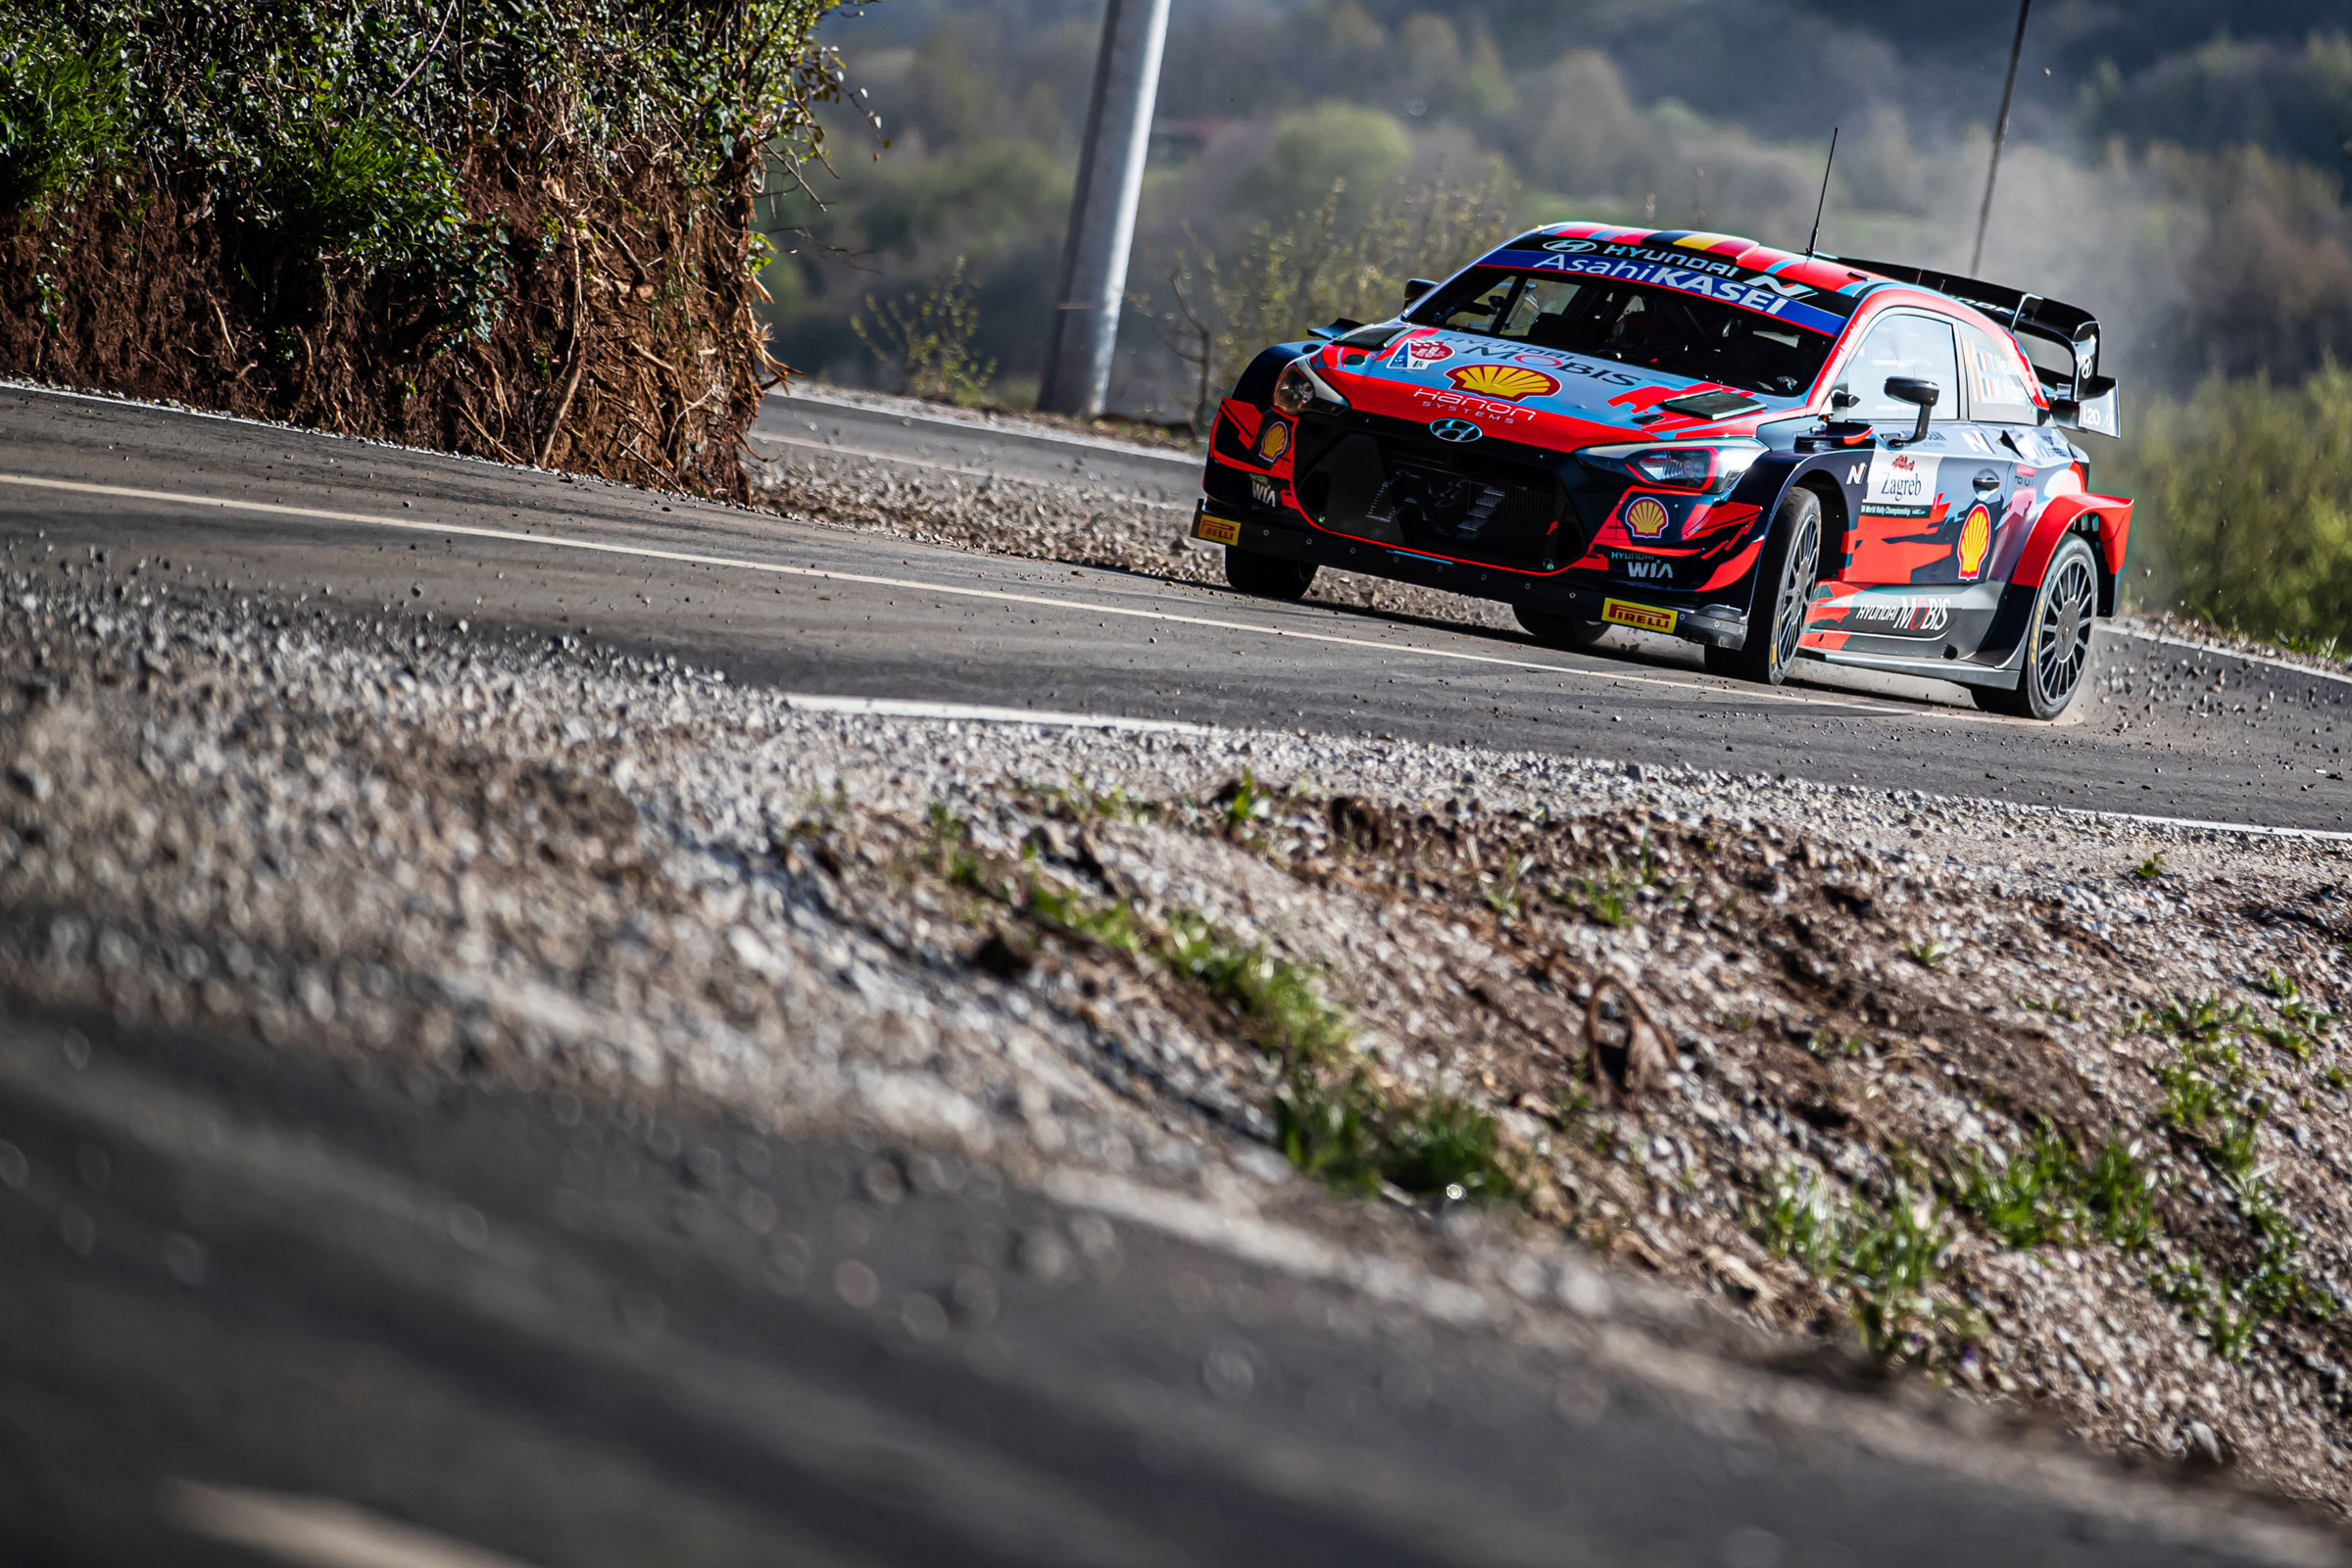 Leg one midday report: Neuville leads Croatia Rally after near-perfect start - 2